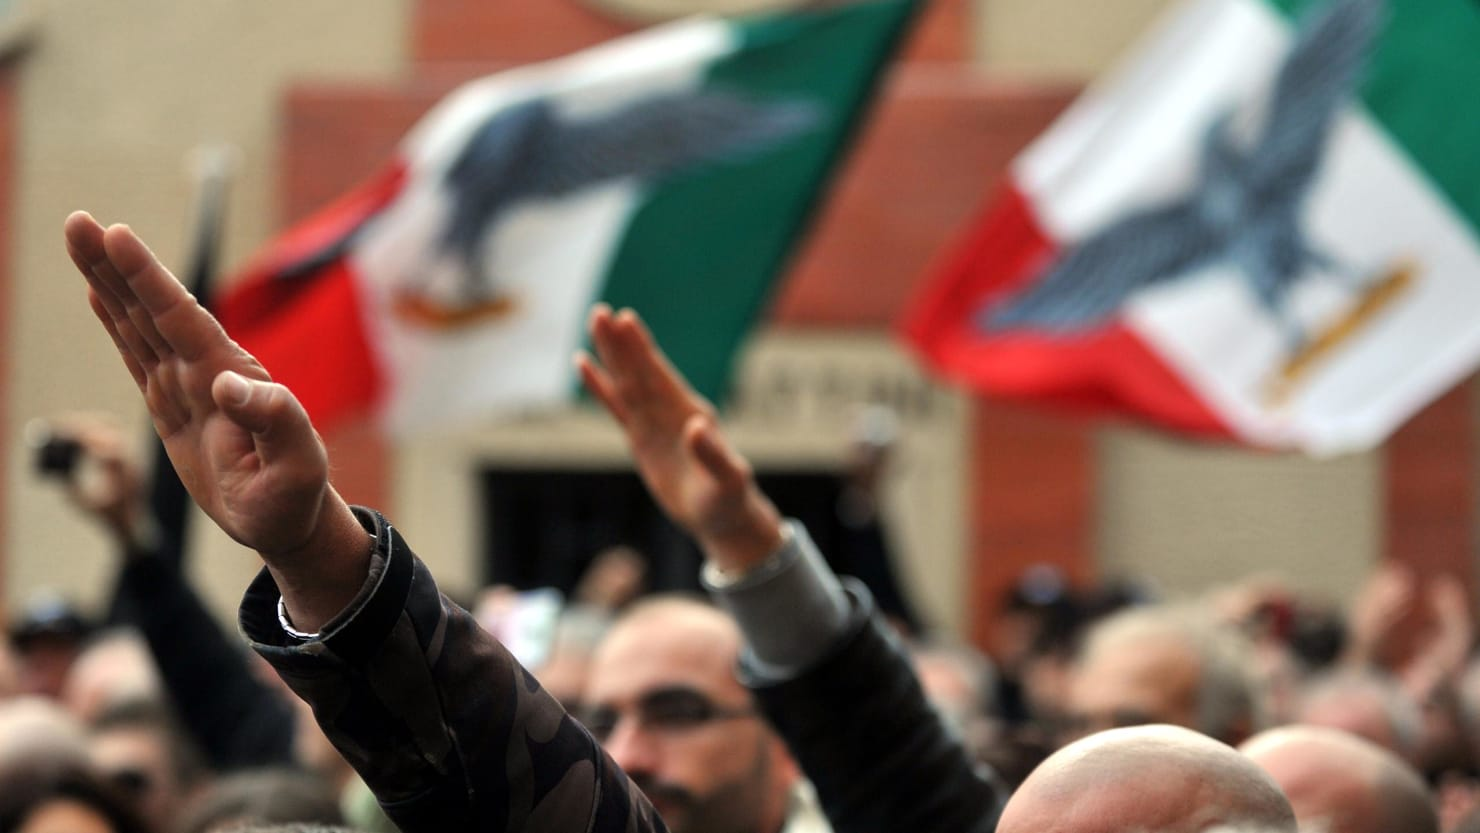 Italian Fascists Celebrate as the World Mourns Pittsburgh